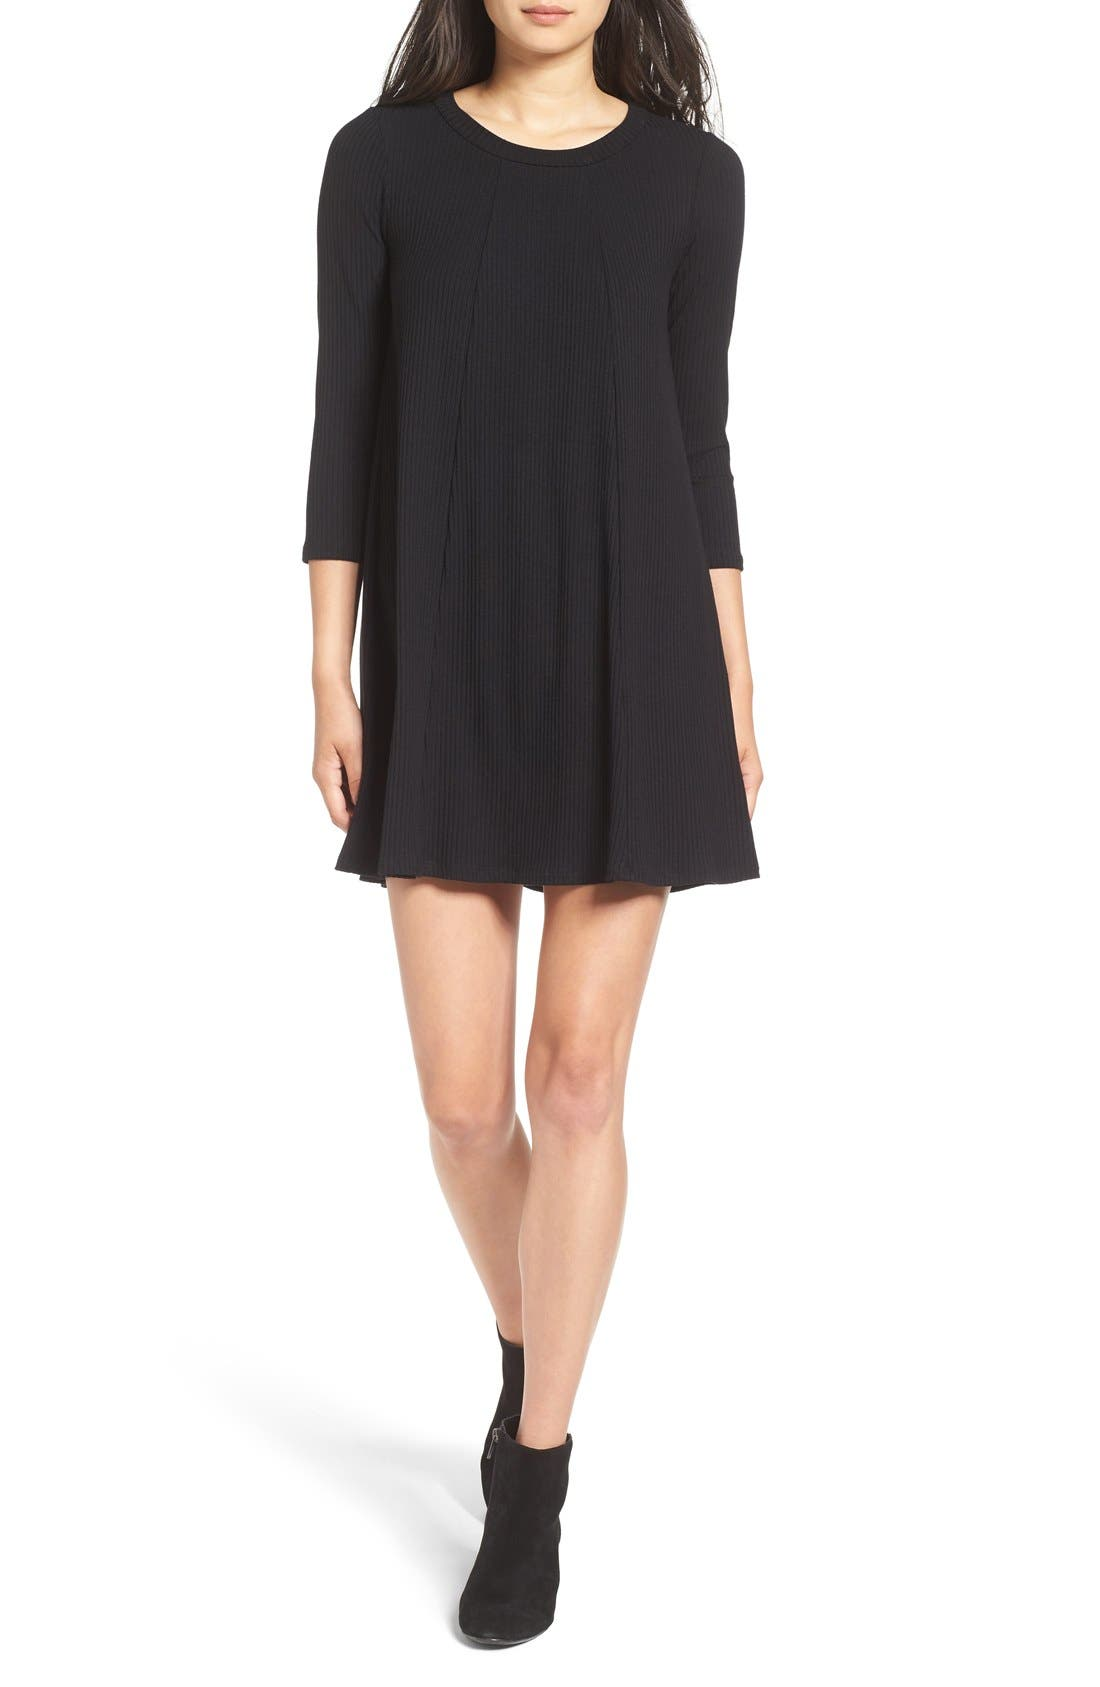 Main Image - Lush 'Leah' Shift Dress